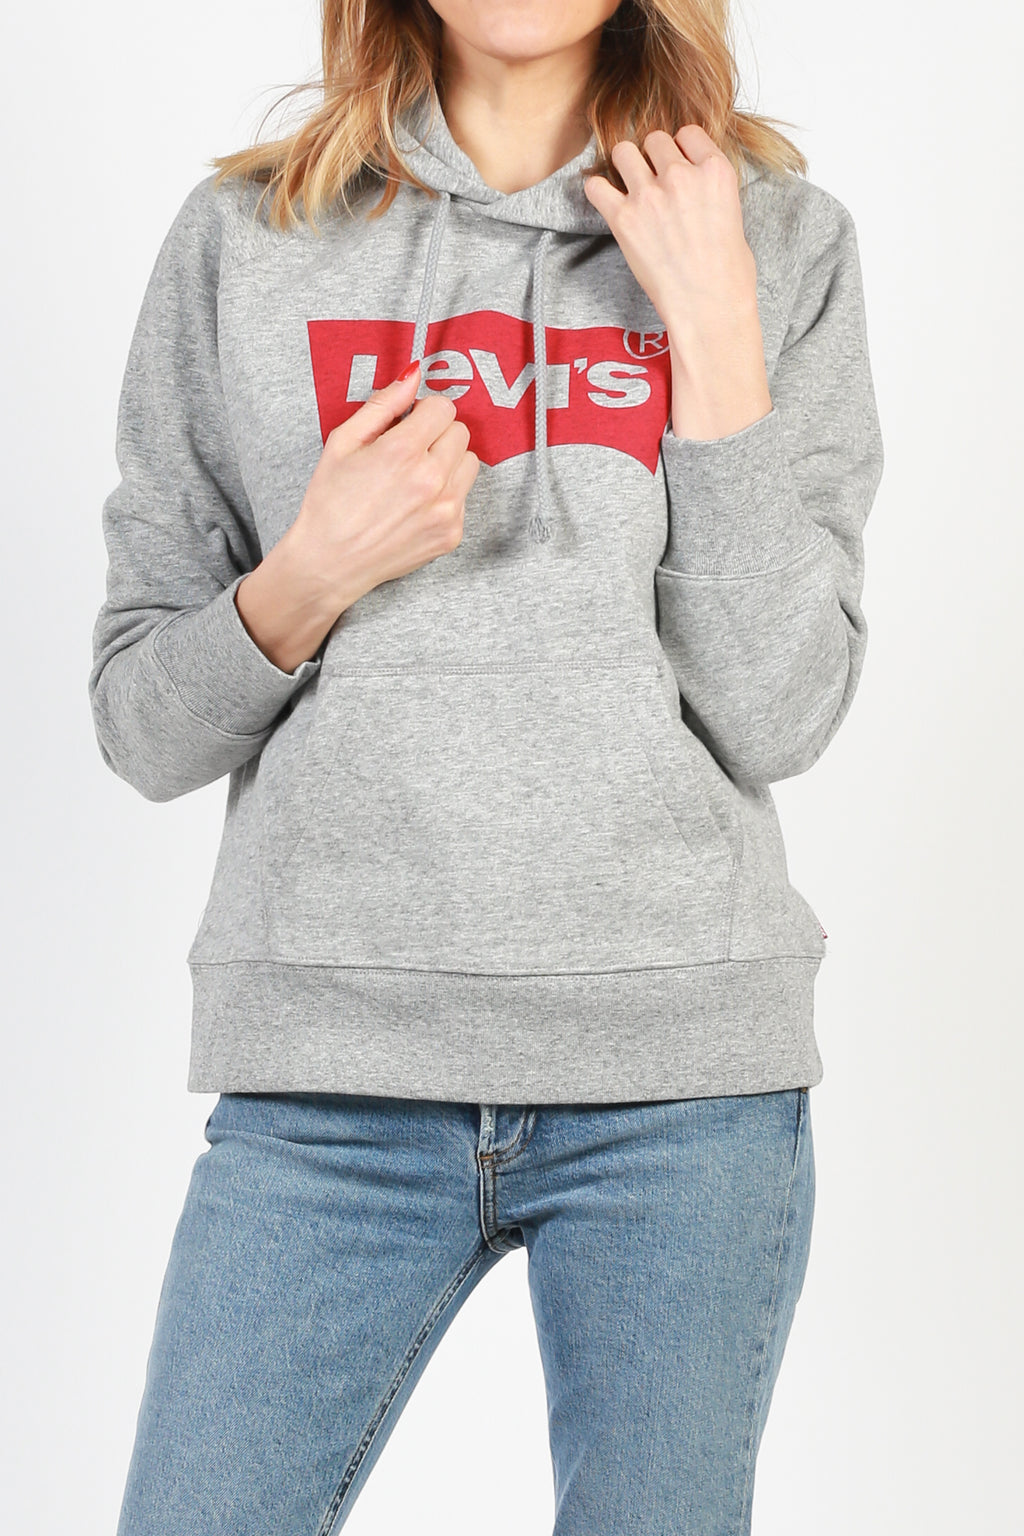 Classic Graphic Sport Hoodie - Levi's, Levi's - Classic Graphic Sport Hoodie, Classic Graphic Sport Hoodie, Levi's Toronto, Levi's Canada, Levi's hoodie, toronto fashion, canadian fashion, toronto boutique, boutique shopping canada